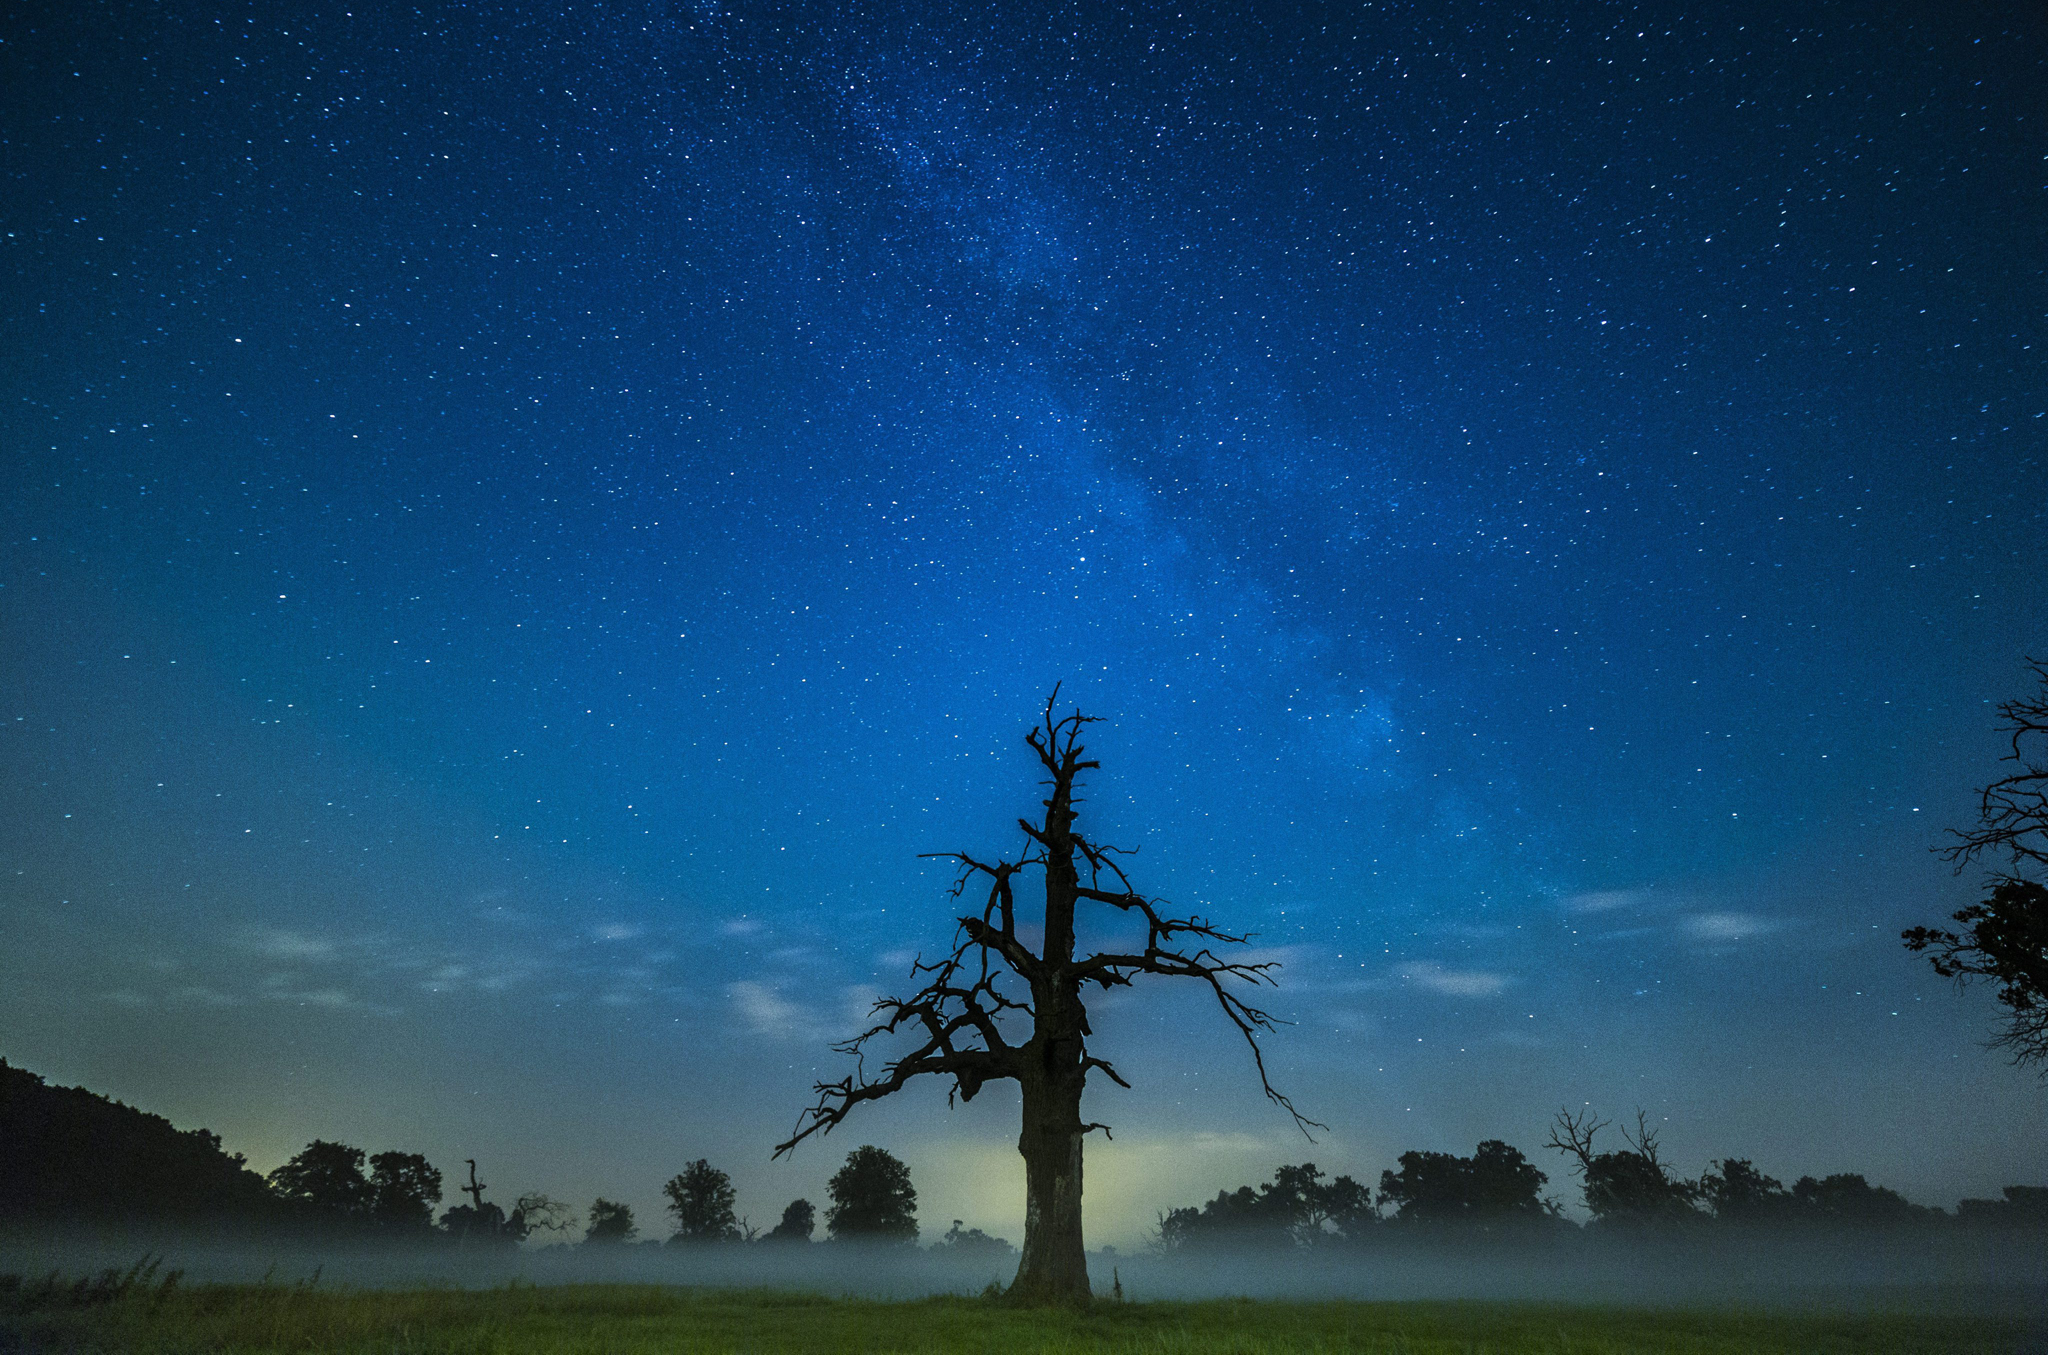 Milky Way seen in Poland...epa04849997 A picture made available on 17 July 2015 shows the bright line of the Milky Way above the old oaks at the Rogalin landscape Park in Rogalin village, near Poznan, on the night of 16 July 2015.  EPA/LUKASZ OGRODOWCZYK POLAND OUT